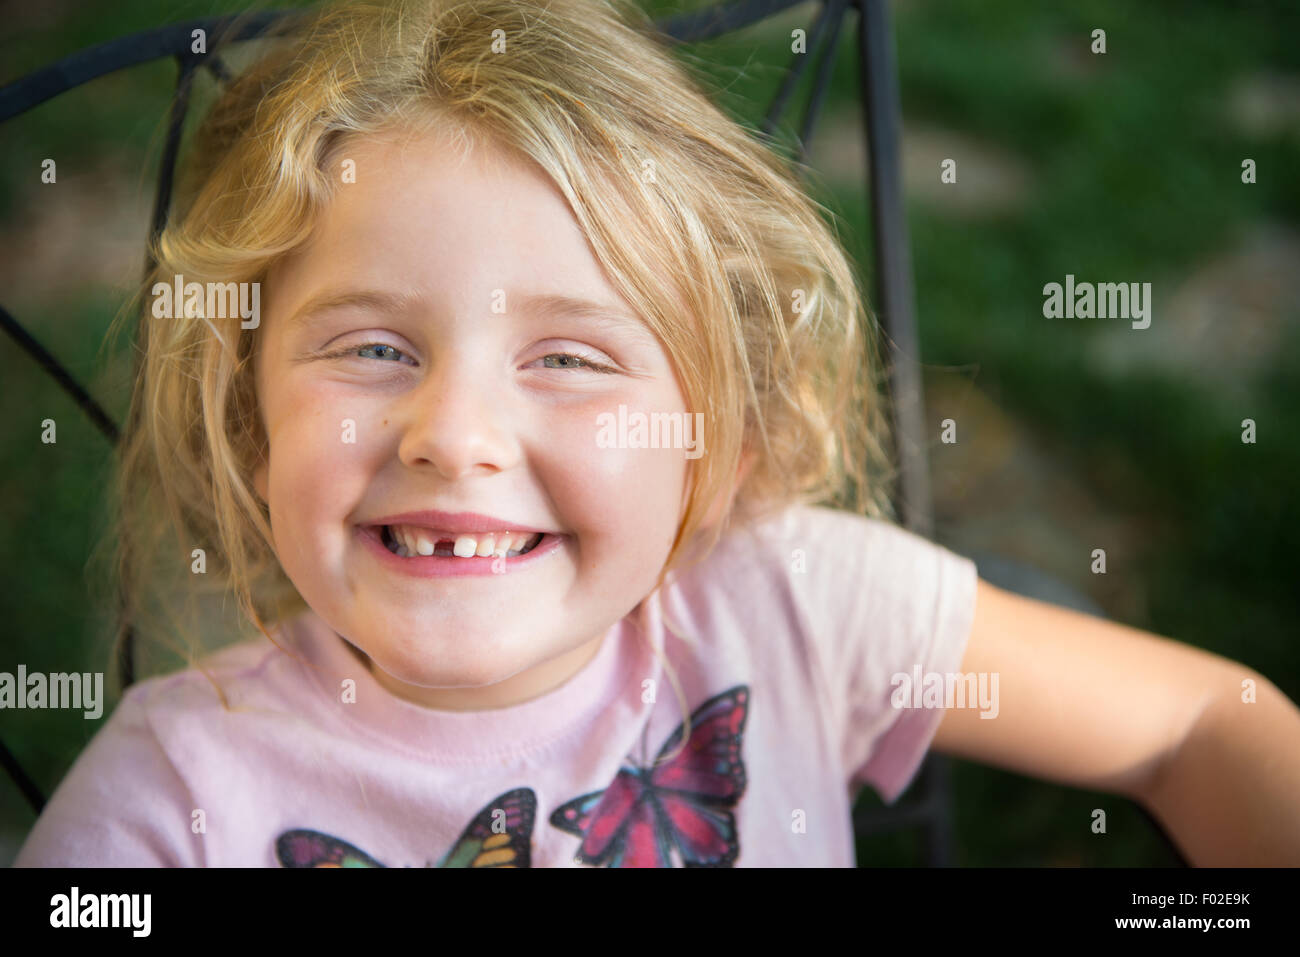 Portrait of a girl with toothy smile - Stock Image